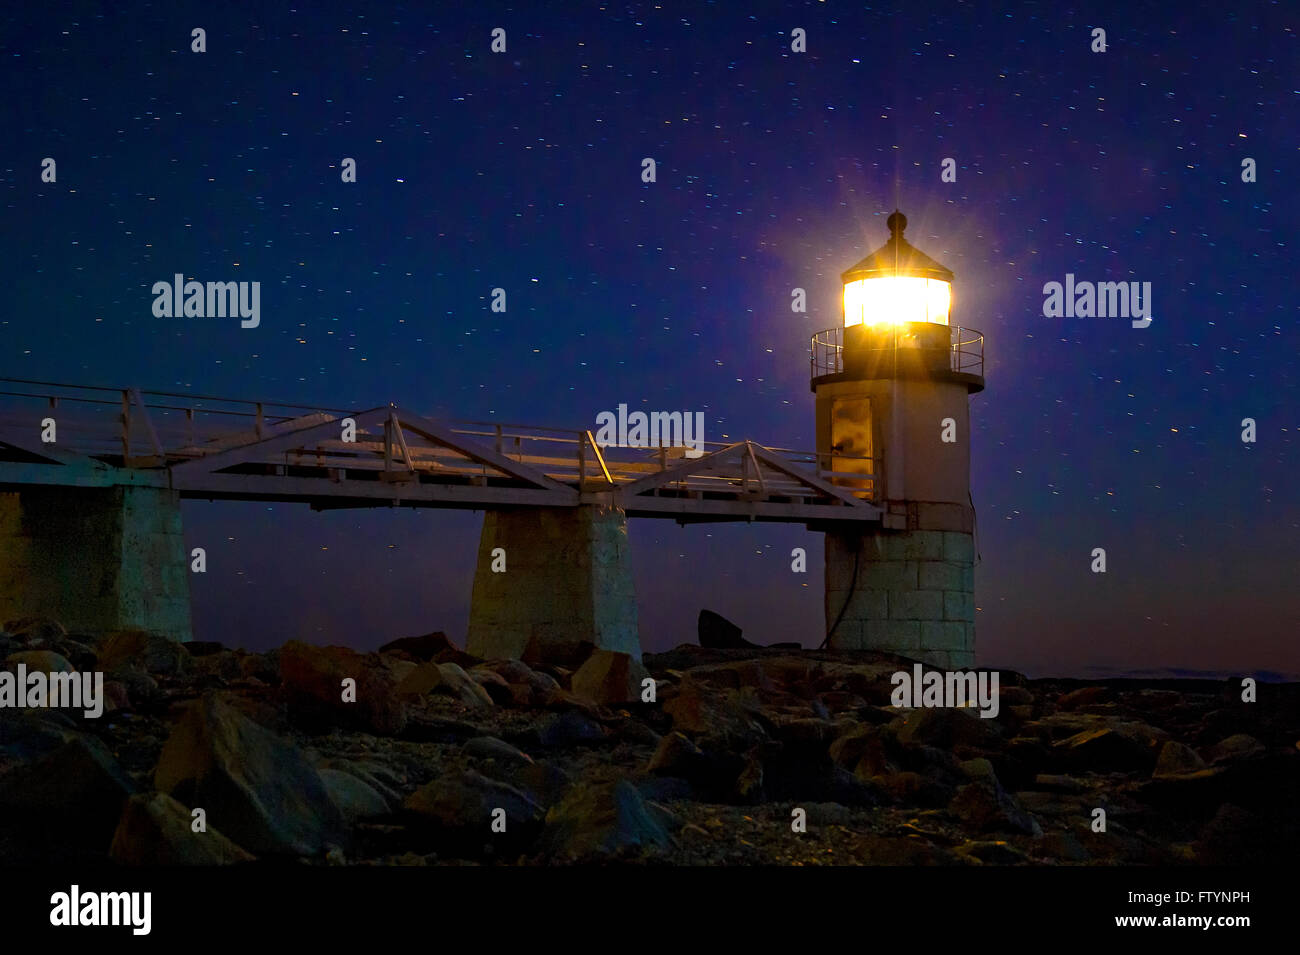 Marshall Point Lighthouse, Port Clyde, Maine, USA - Stock Image